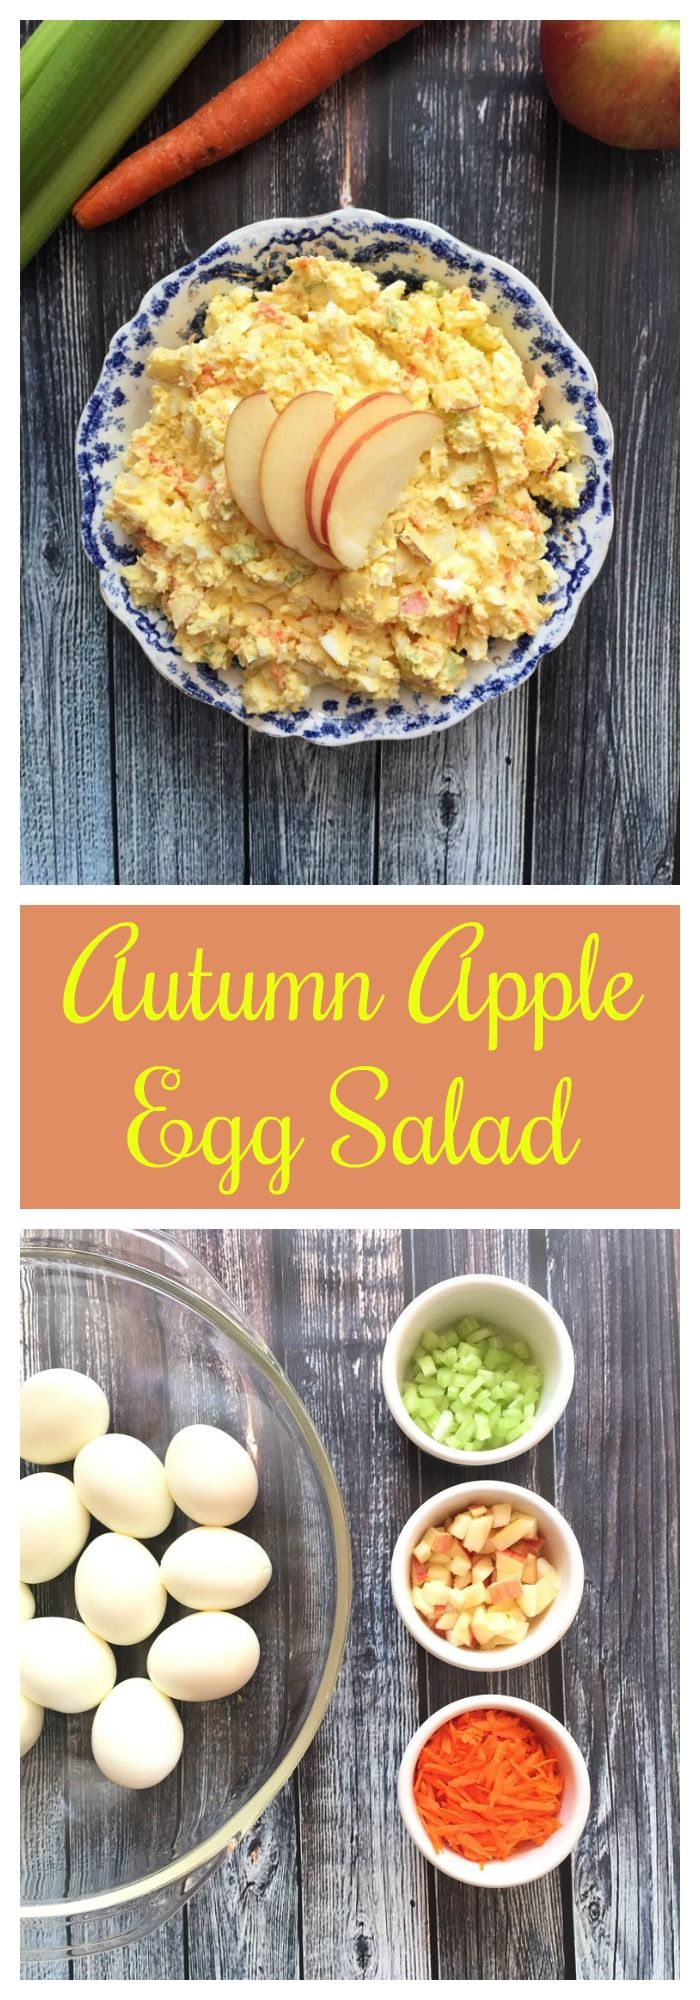 Take egg salad to a whole new flavor and nutritional level with this Autumn Apple Egg Salad. It's made with hard boiled eggs, chopped apple, shredded carrot, celery and light mayo. Yes please! #egg #salad #apples https://www.lizshealthytable.com/2015/09/25/healthy-autumn-apple-egg-salad-recipe/ Make any time of the year or for Rosh Hashanah or your Yom Kippur break fast. #brunch #lunch #YomKippur| Follow @lizshealthytable & check out her awesome podcast for more great recipes!